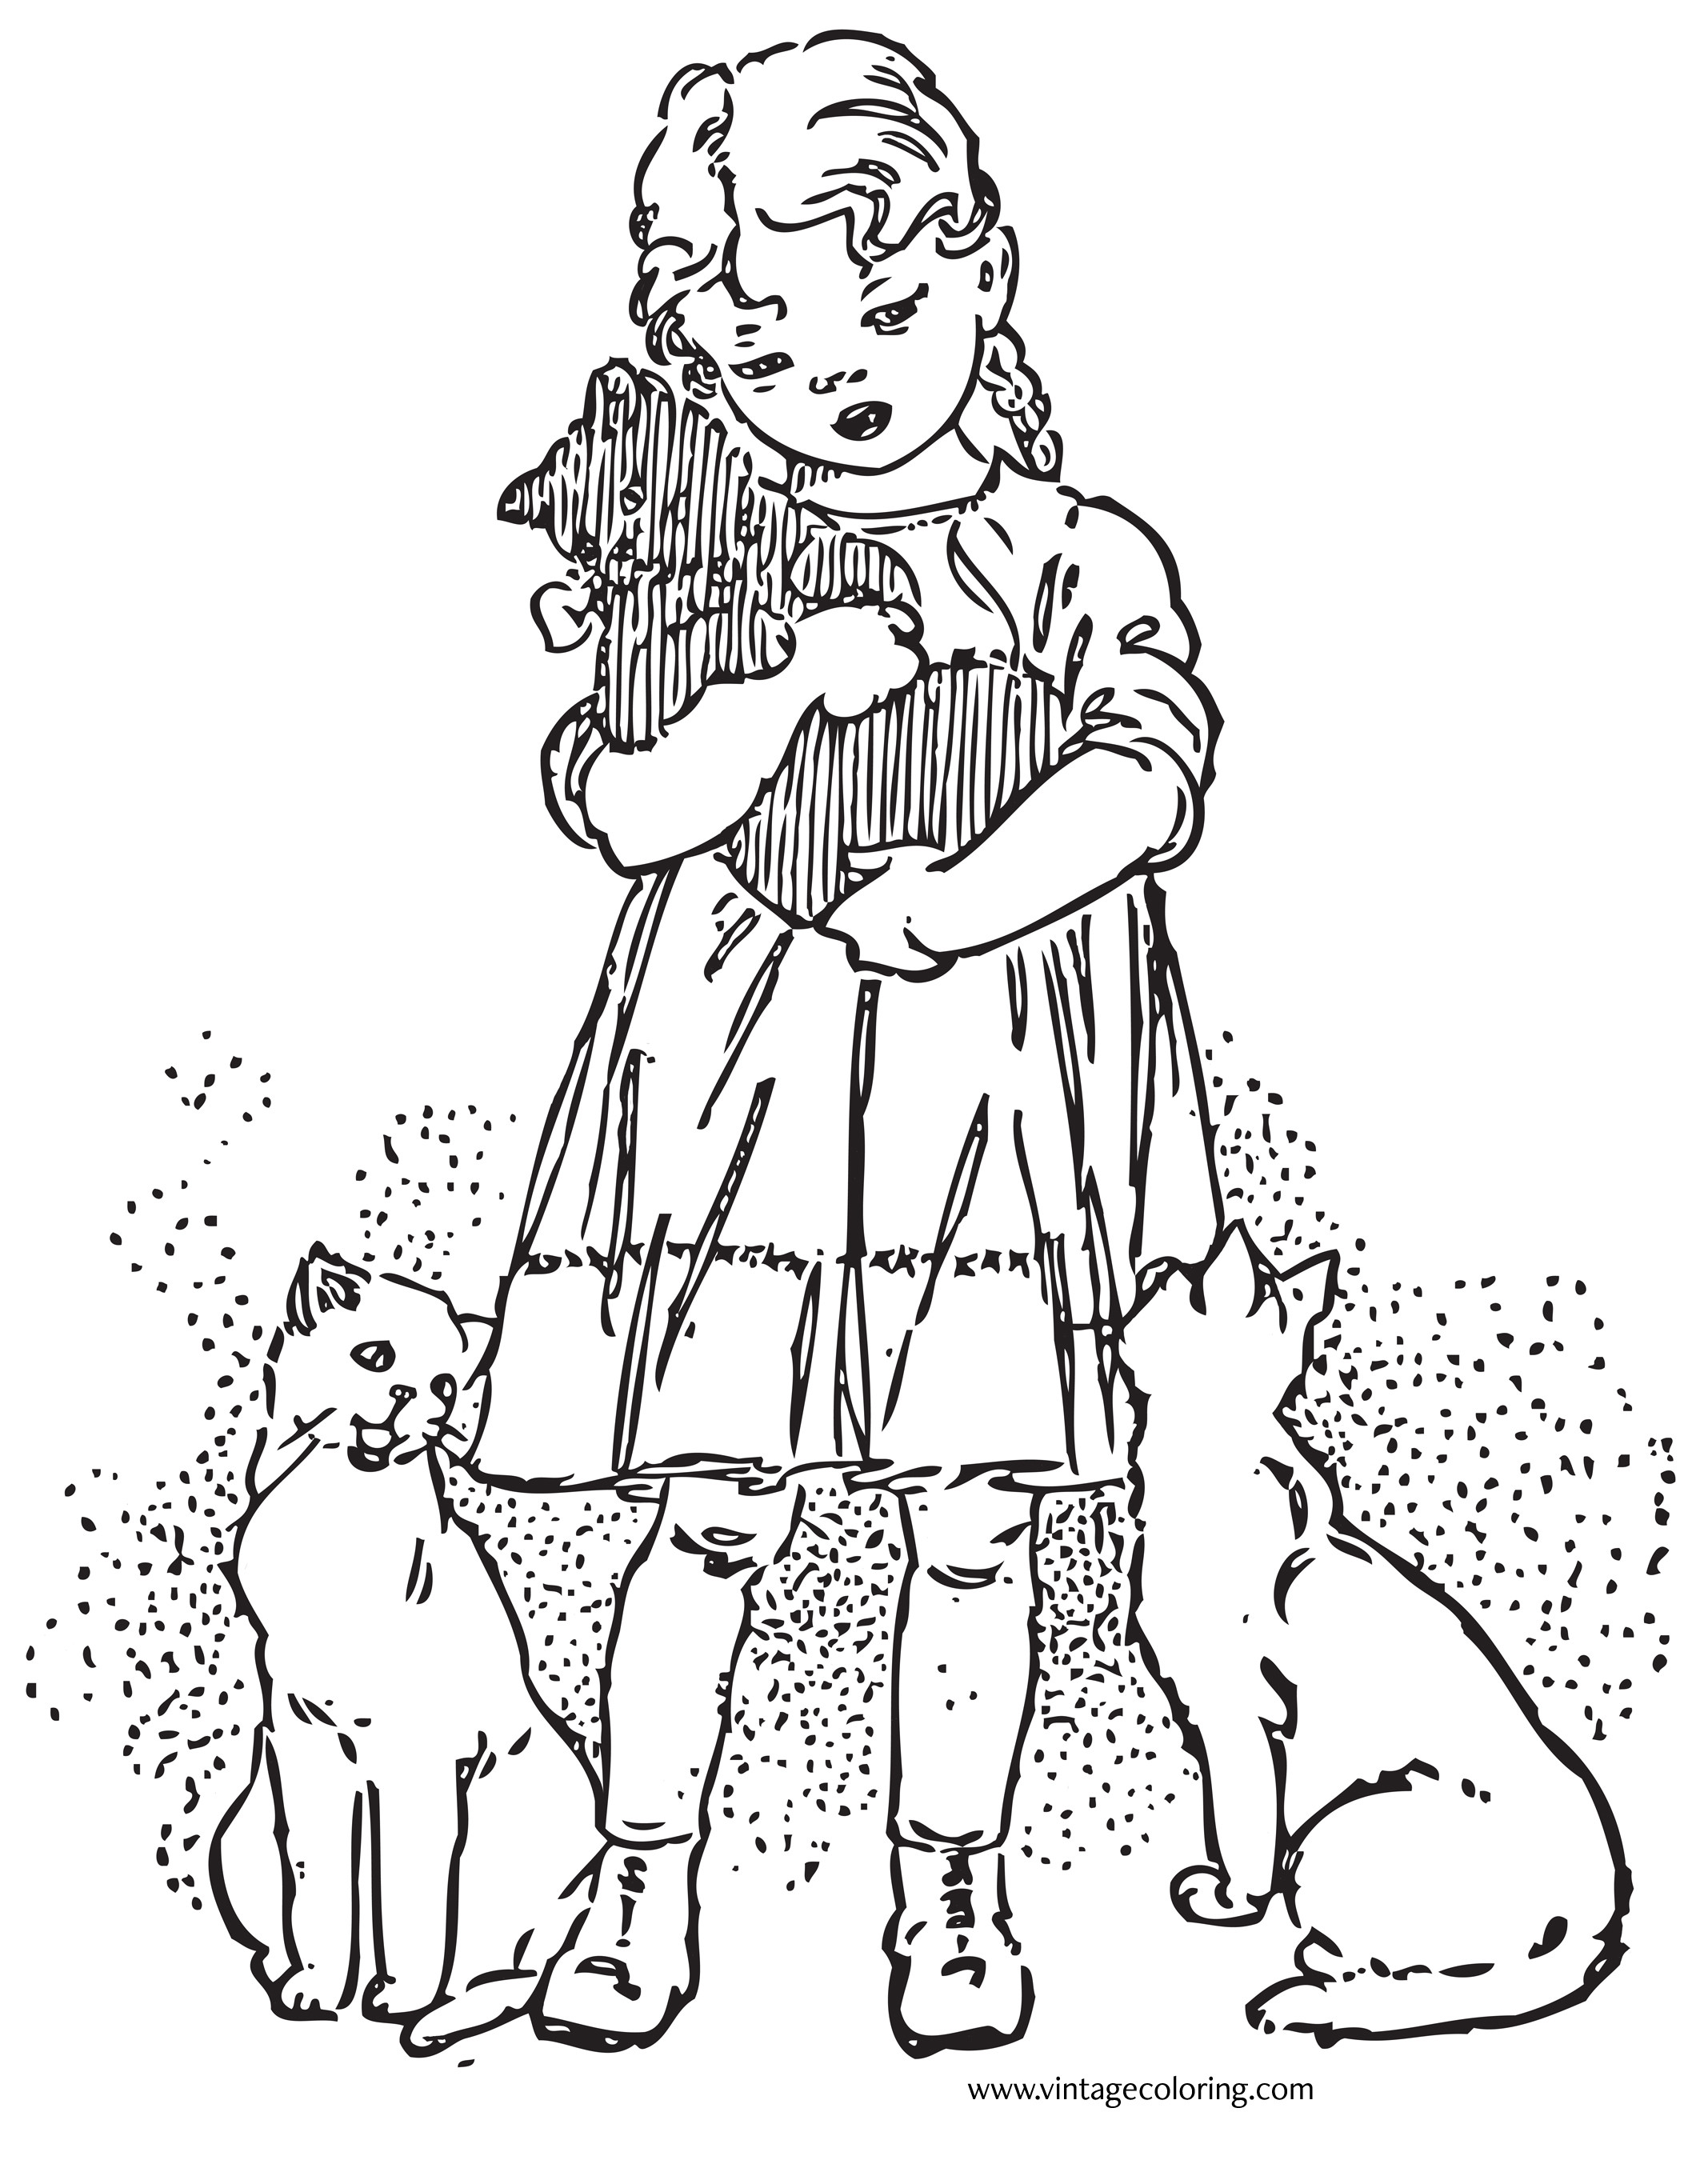 Vintage Coloring Book Pages  Girl and Favorite Kitten A Free Vintage Coloring Page